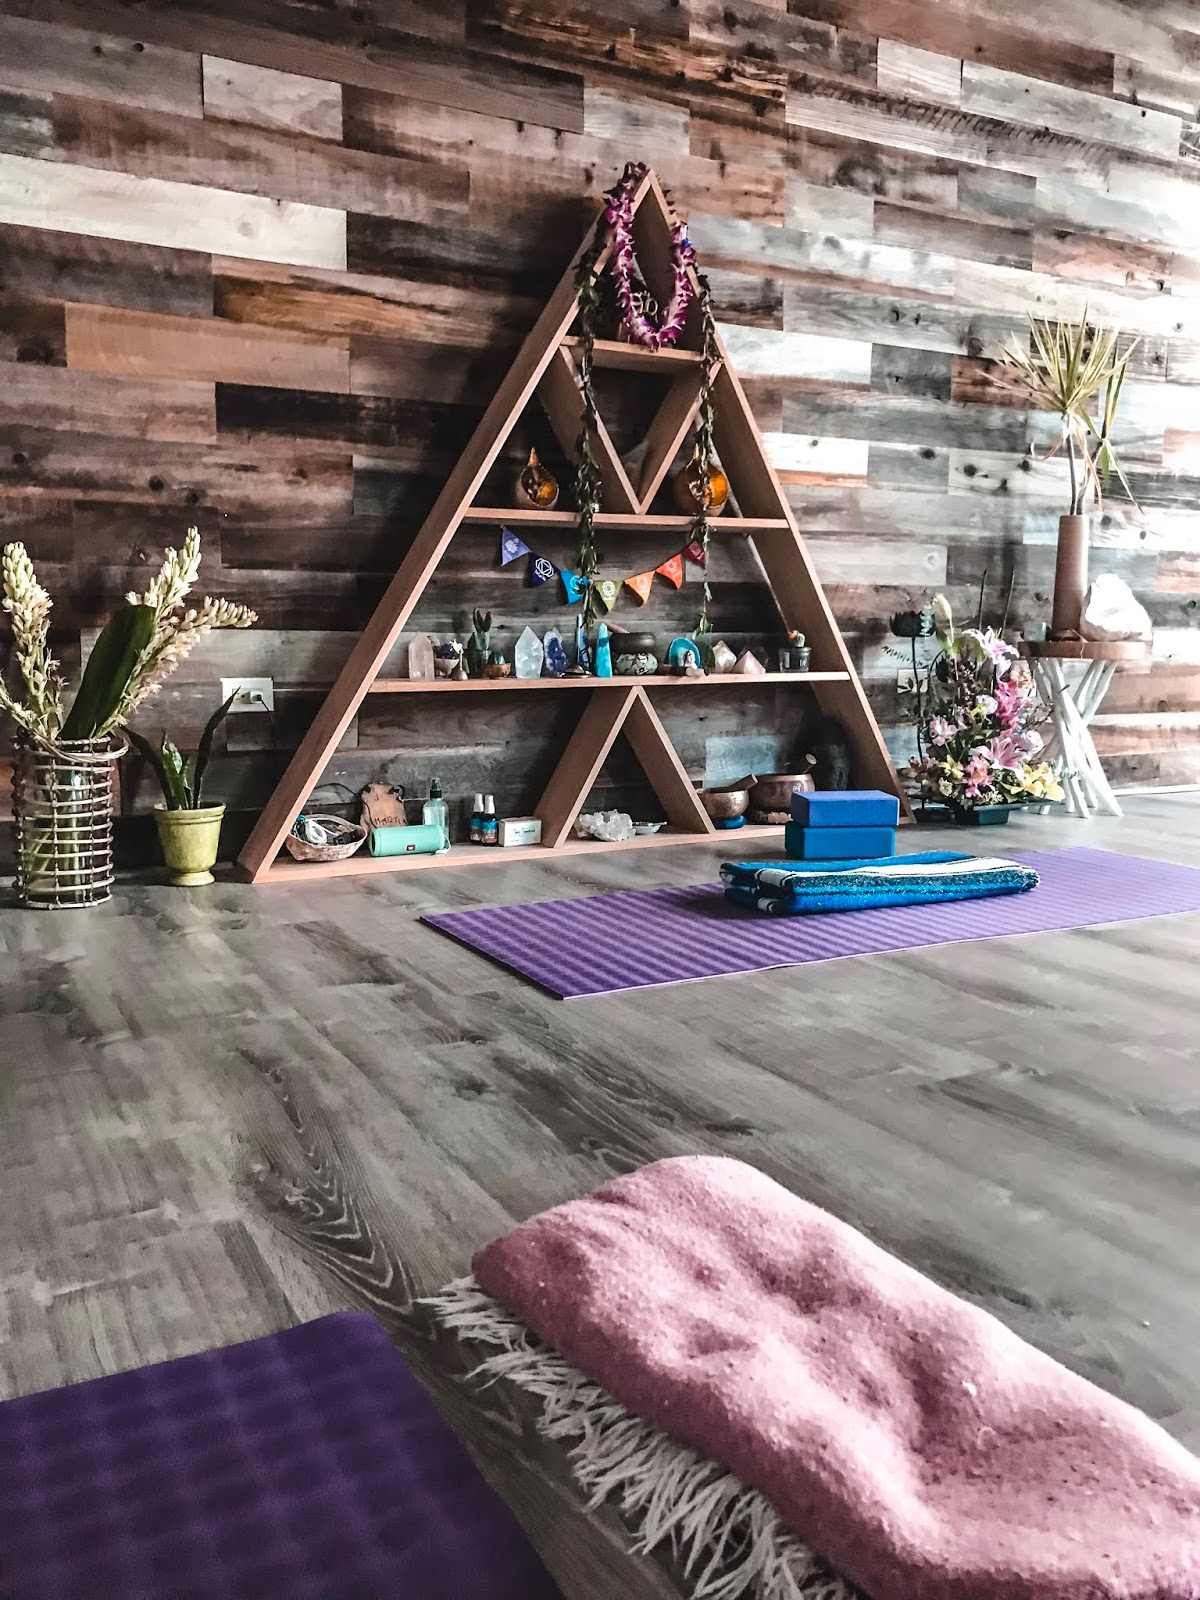 Yogaloha studio in Waikiki Hawaii